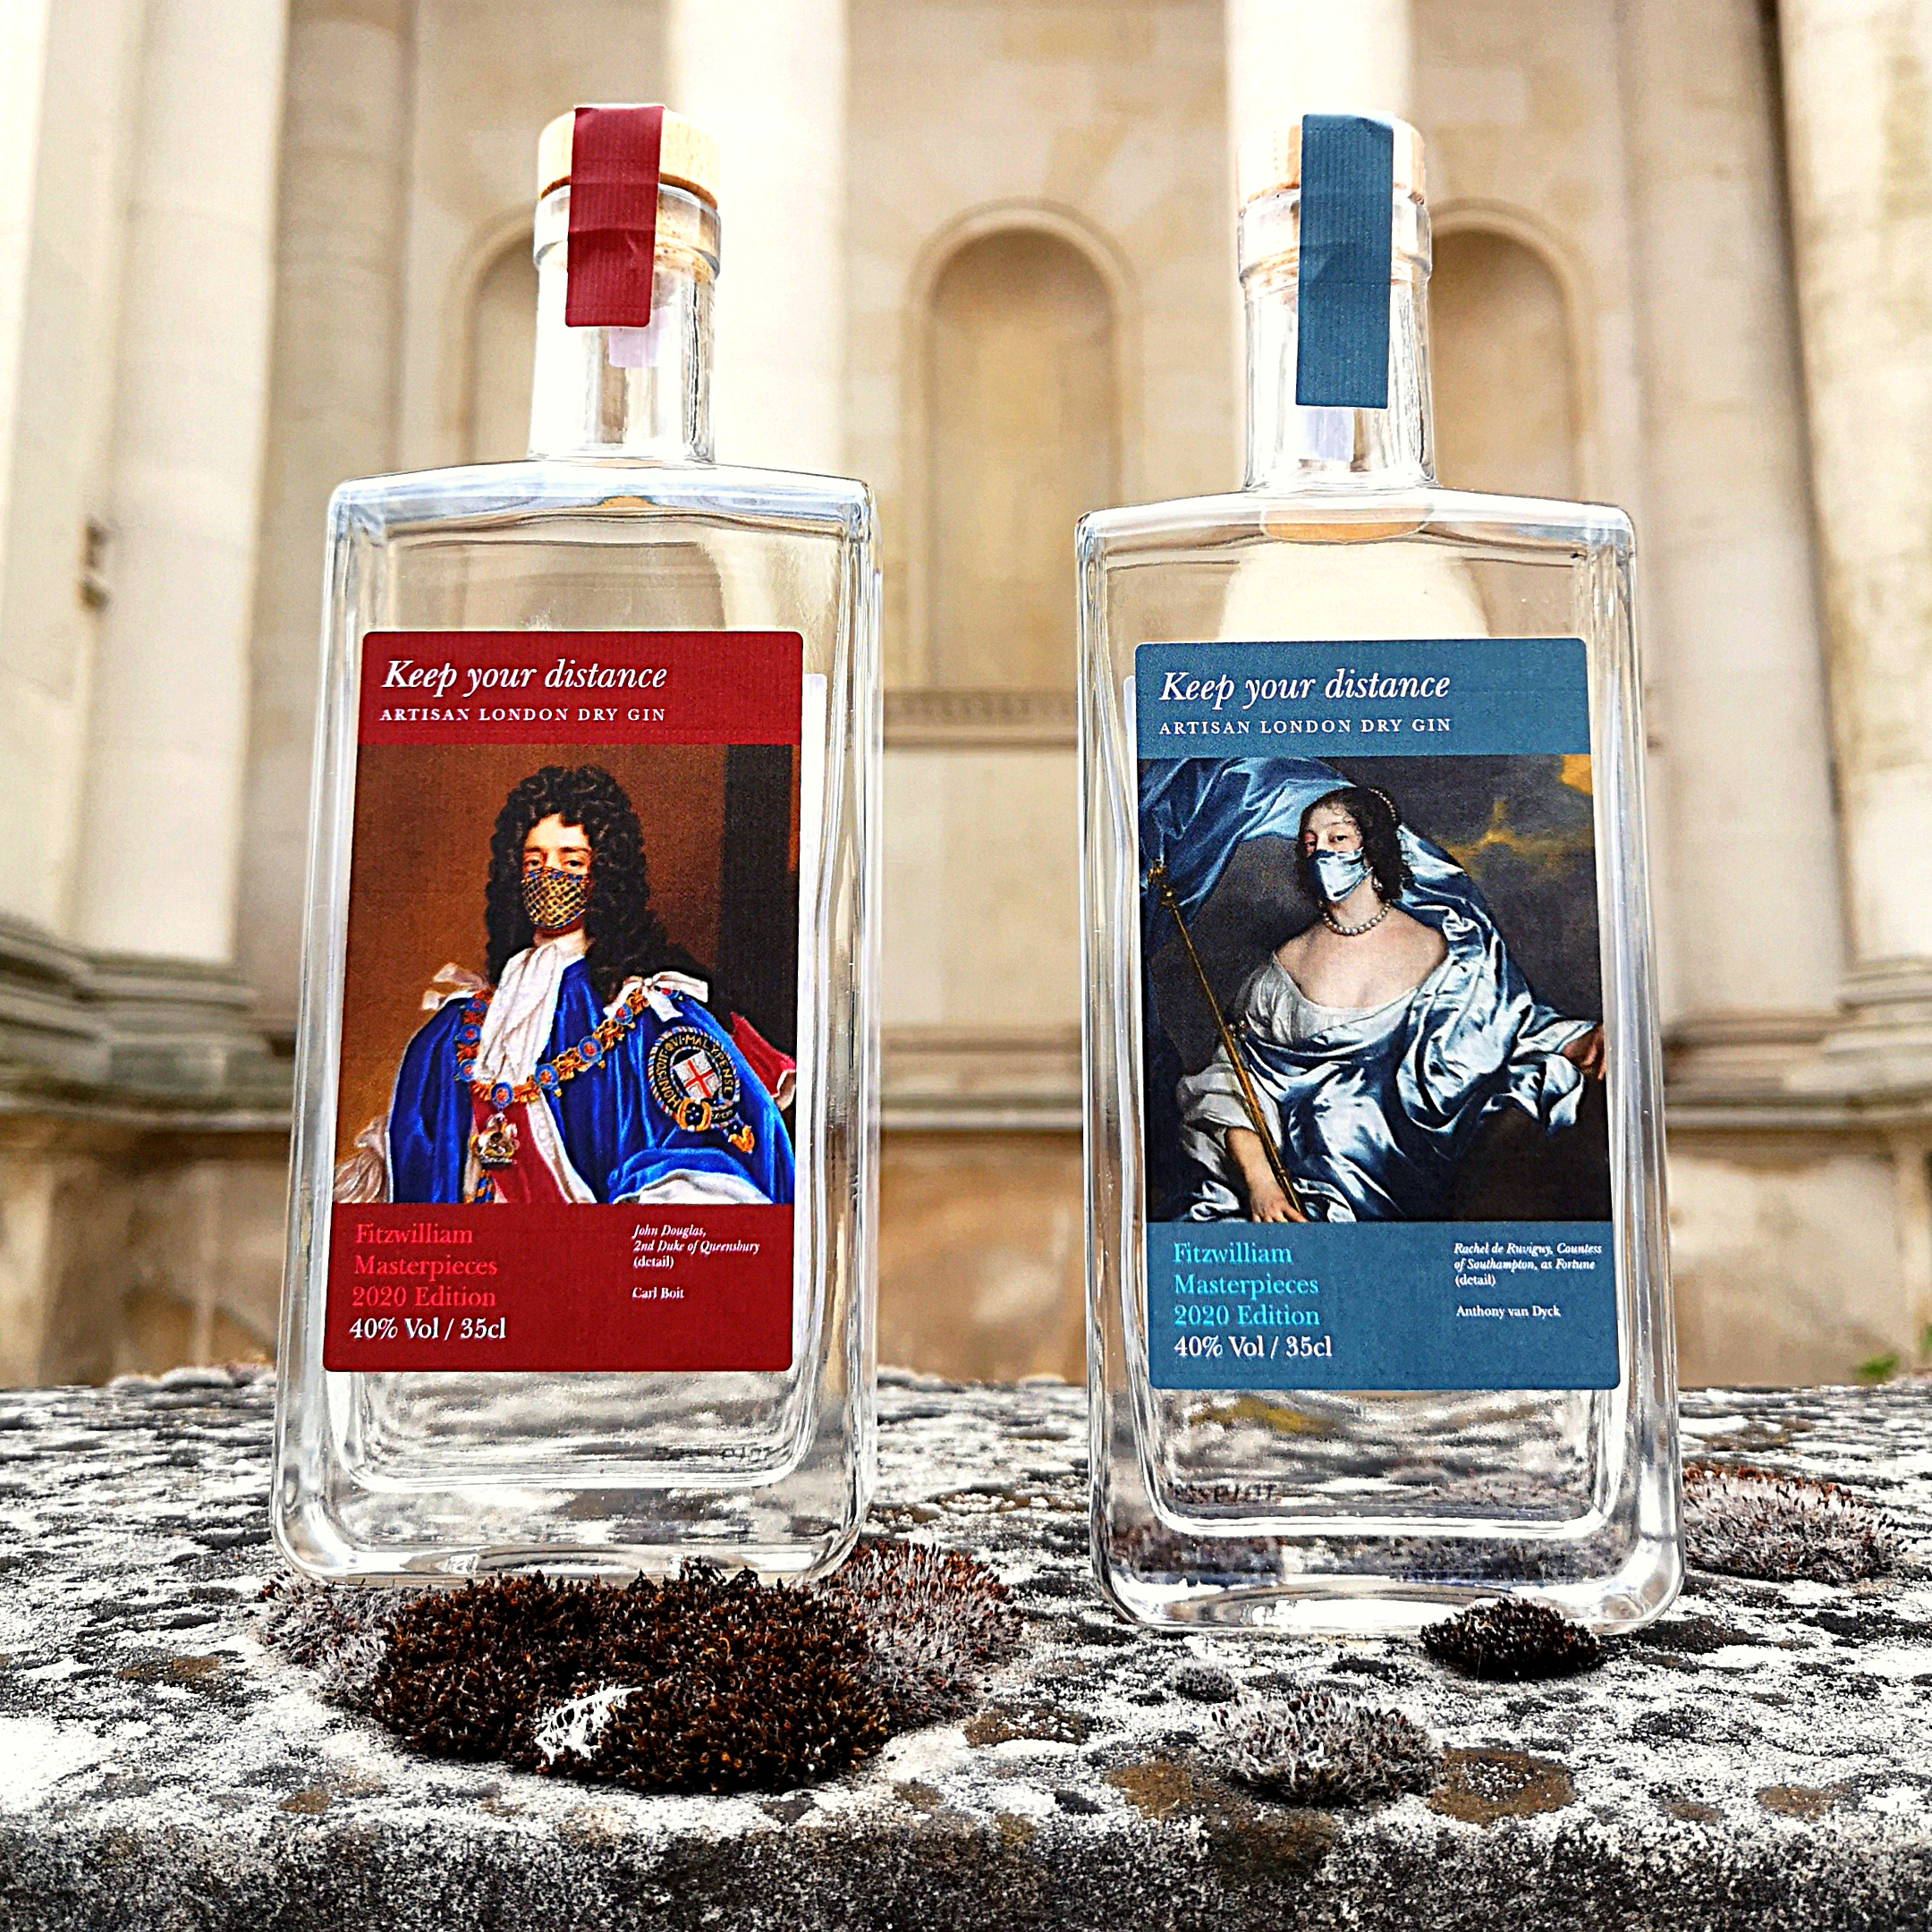 Featured image for the project: #Keep Your Distance Artisan London Dry Gin 40%